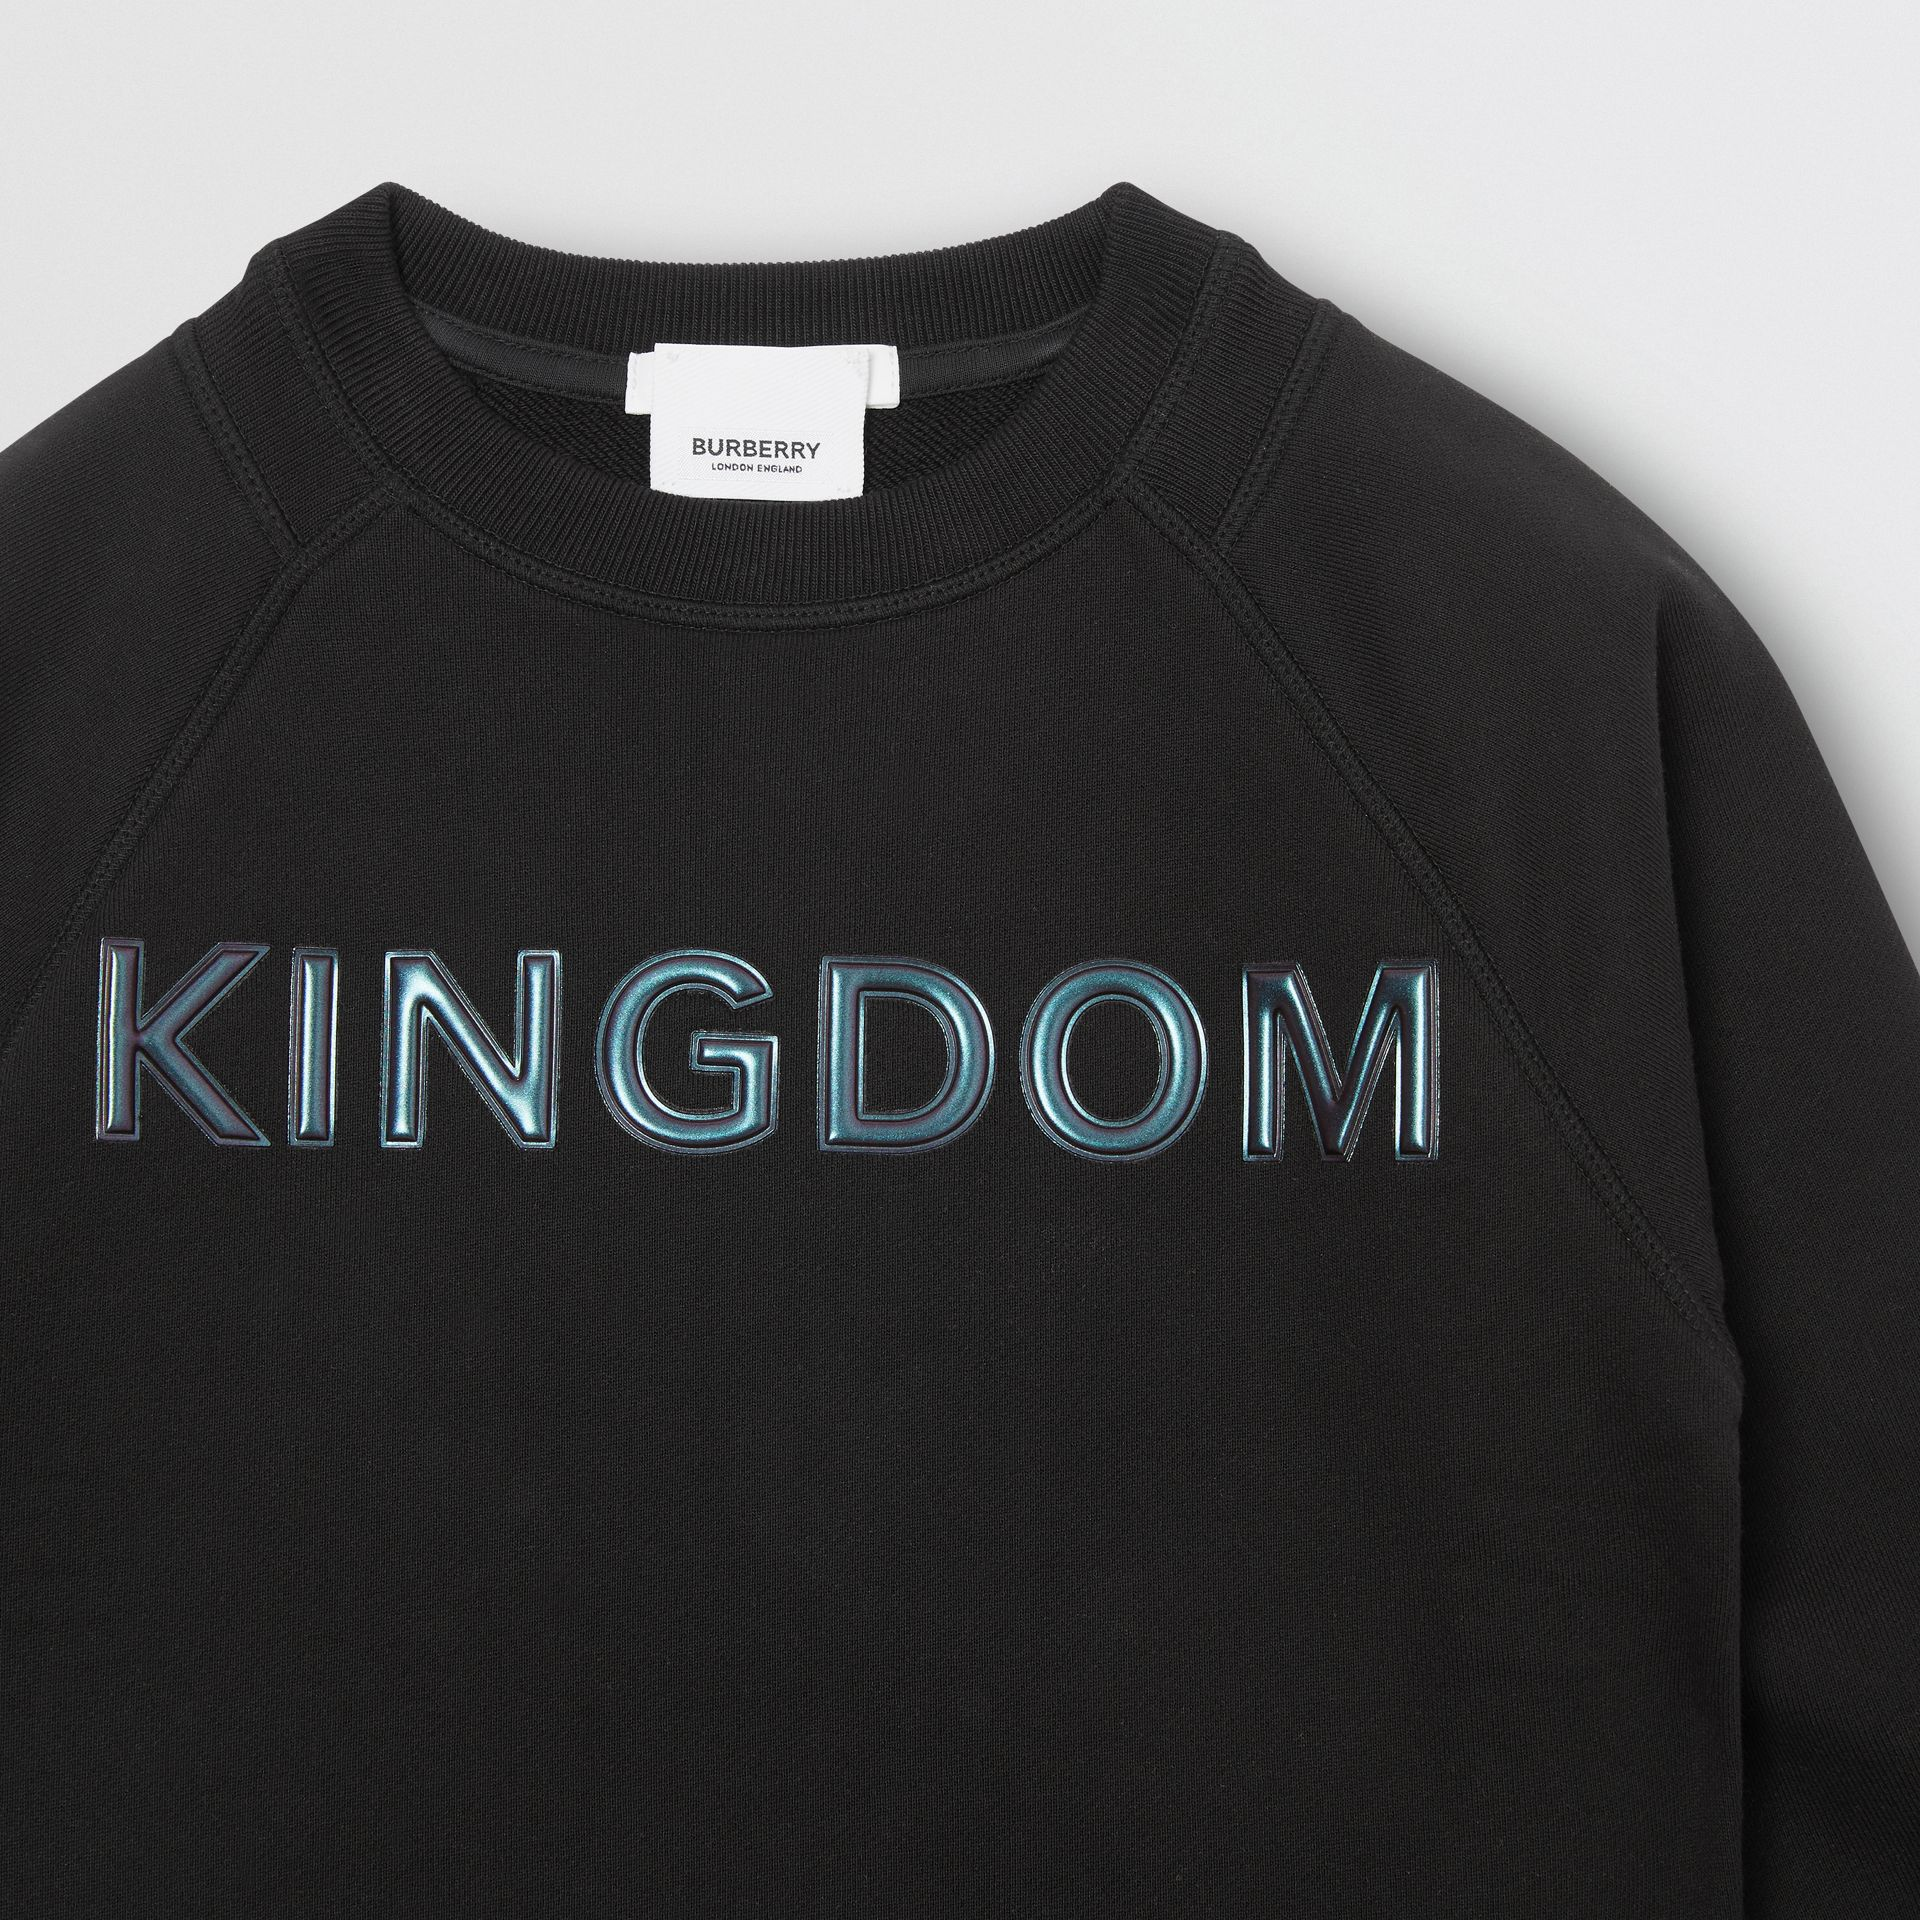 Kingdom Print Cotton Sweatshirt in Black | Burberry - gallery image 4